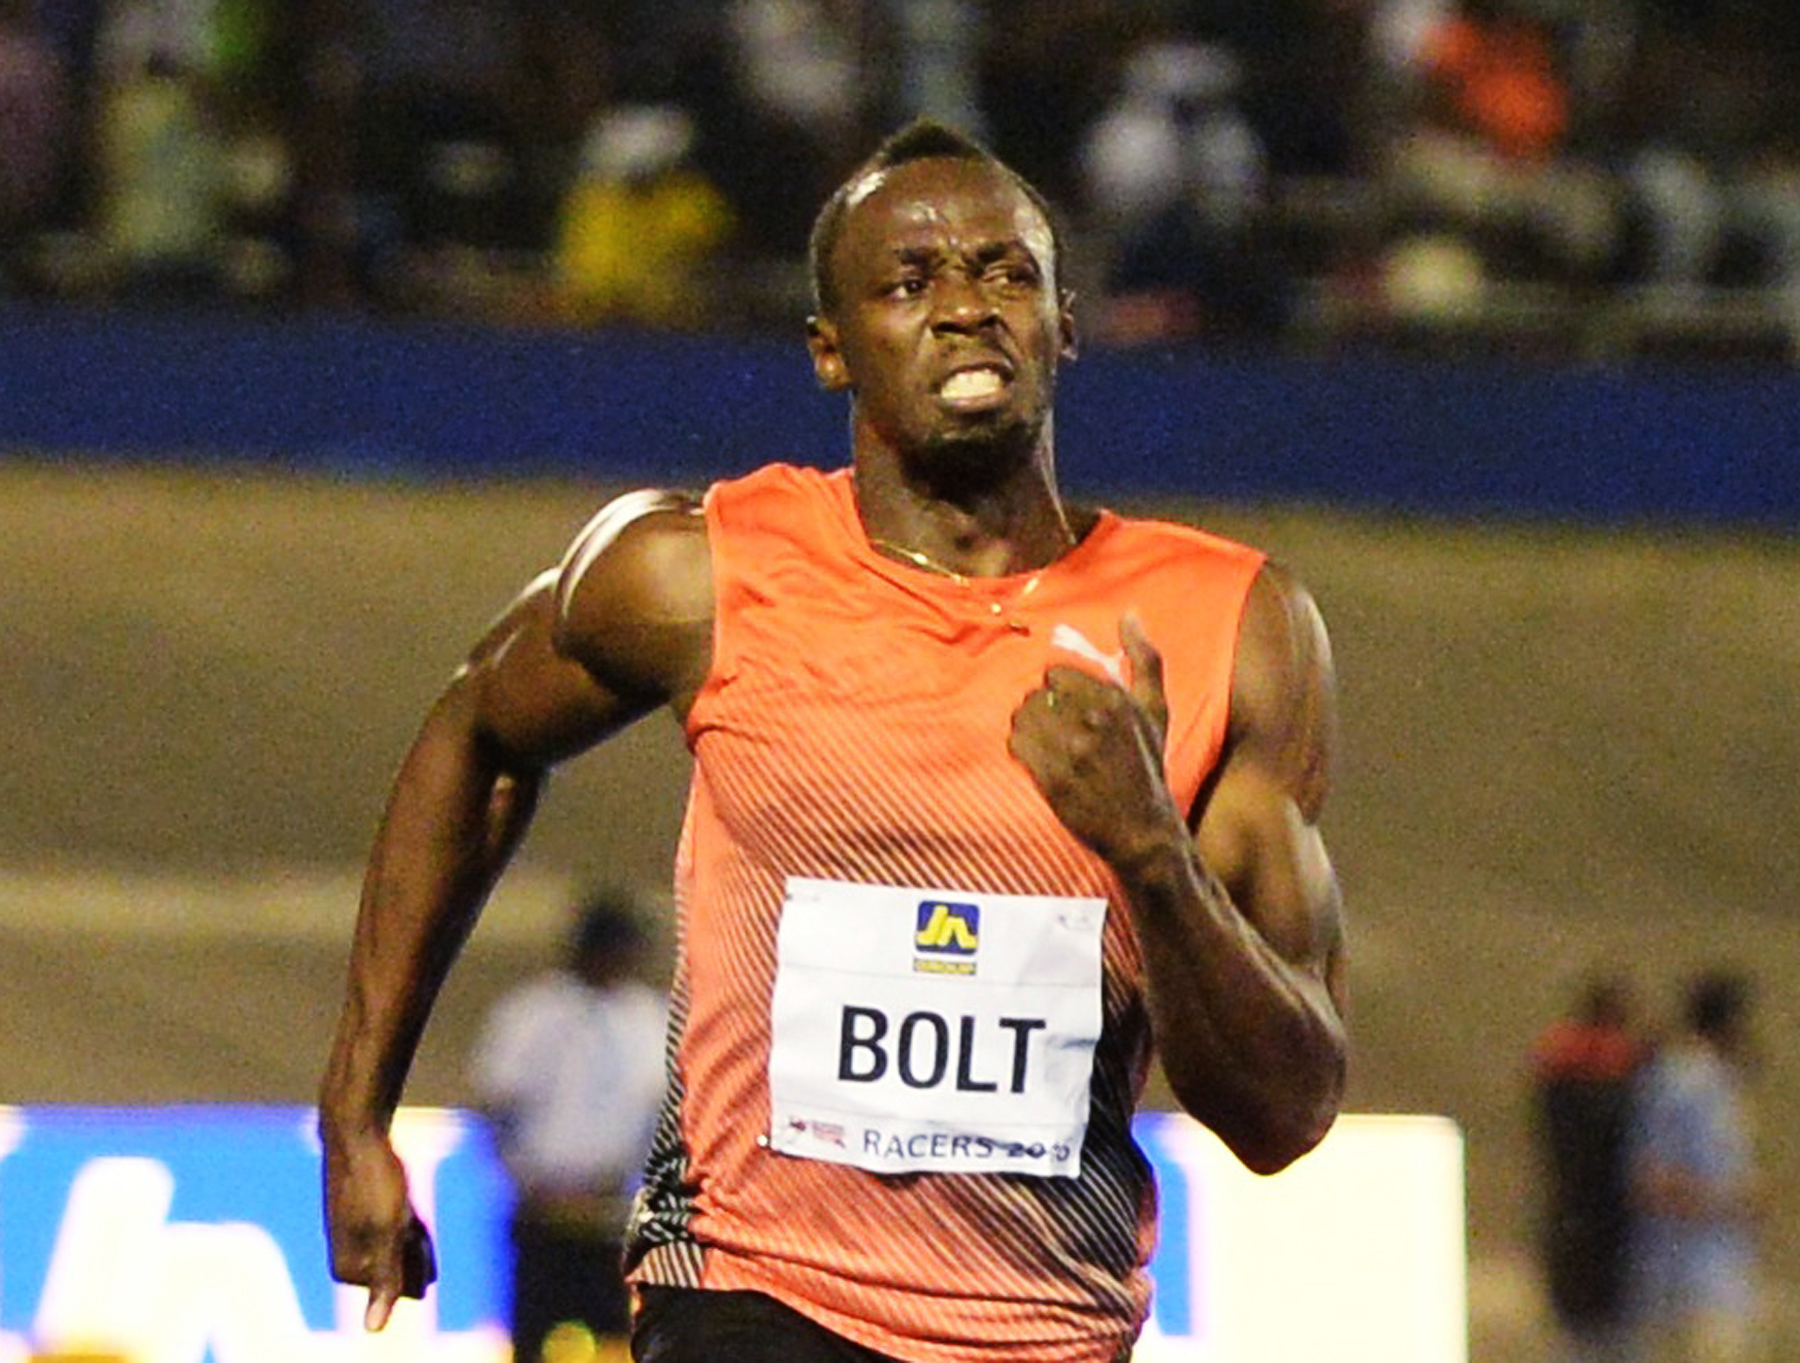 Usain Bolt, of Jamaica, wins the 100-meter final ahead of Yohan Blake and Asafa Powell, both of Jamaica, in the Racers Grand Prix track and field event at the National Stadium in Kingston, Jamaica, Saturday, June 11, 2016. (AP Photo/Collin Reid)